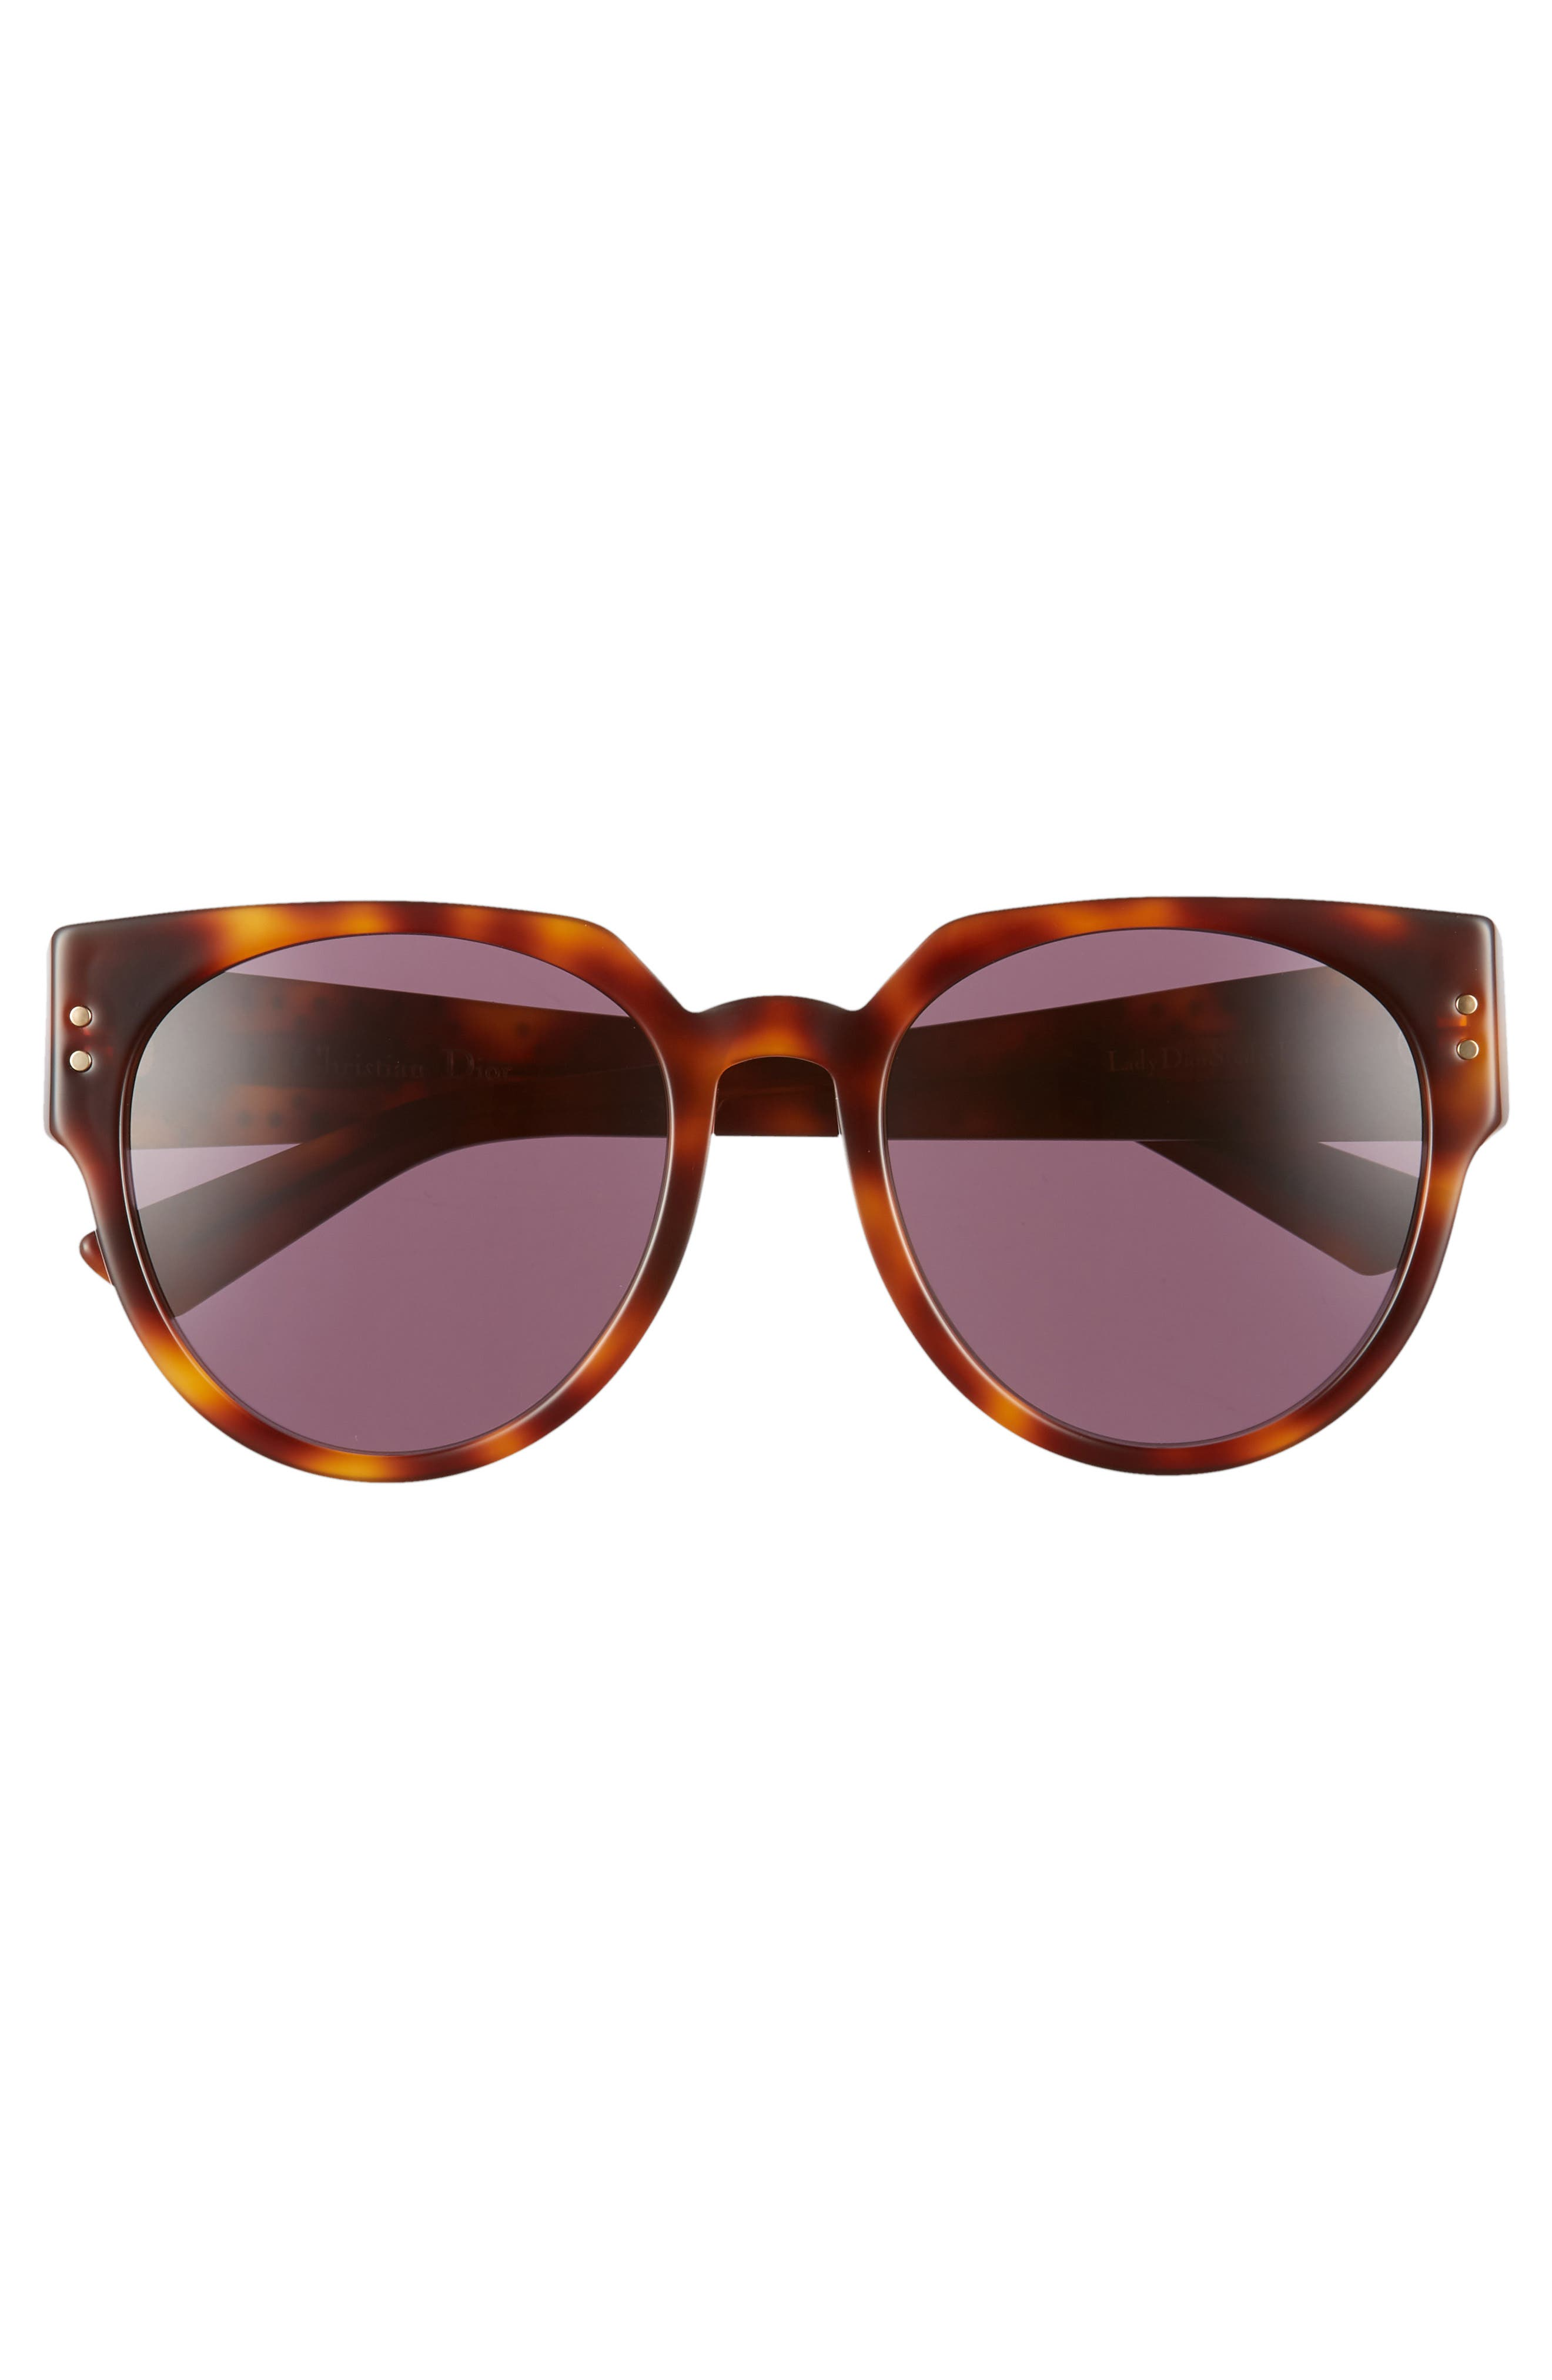 Lady Dior 54mm Special Fit Polarized Cat Eye Sunglasses,                             Alternate thumbnail 3, color,                             DARK HAVANA